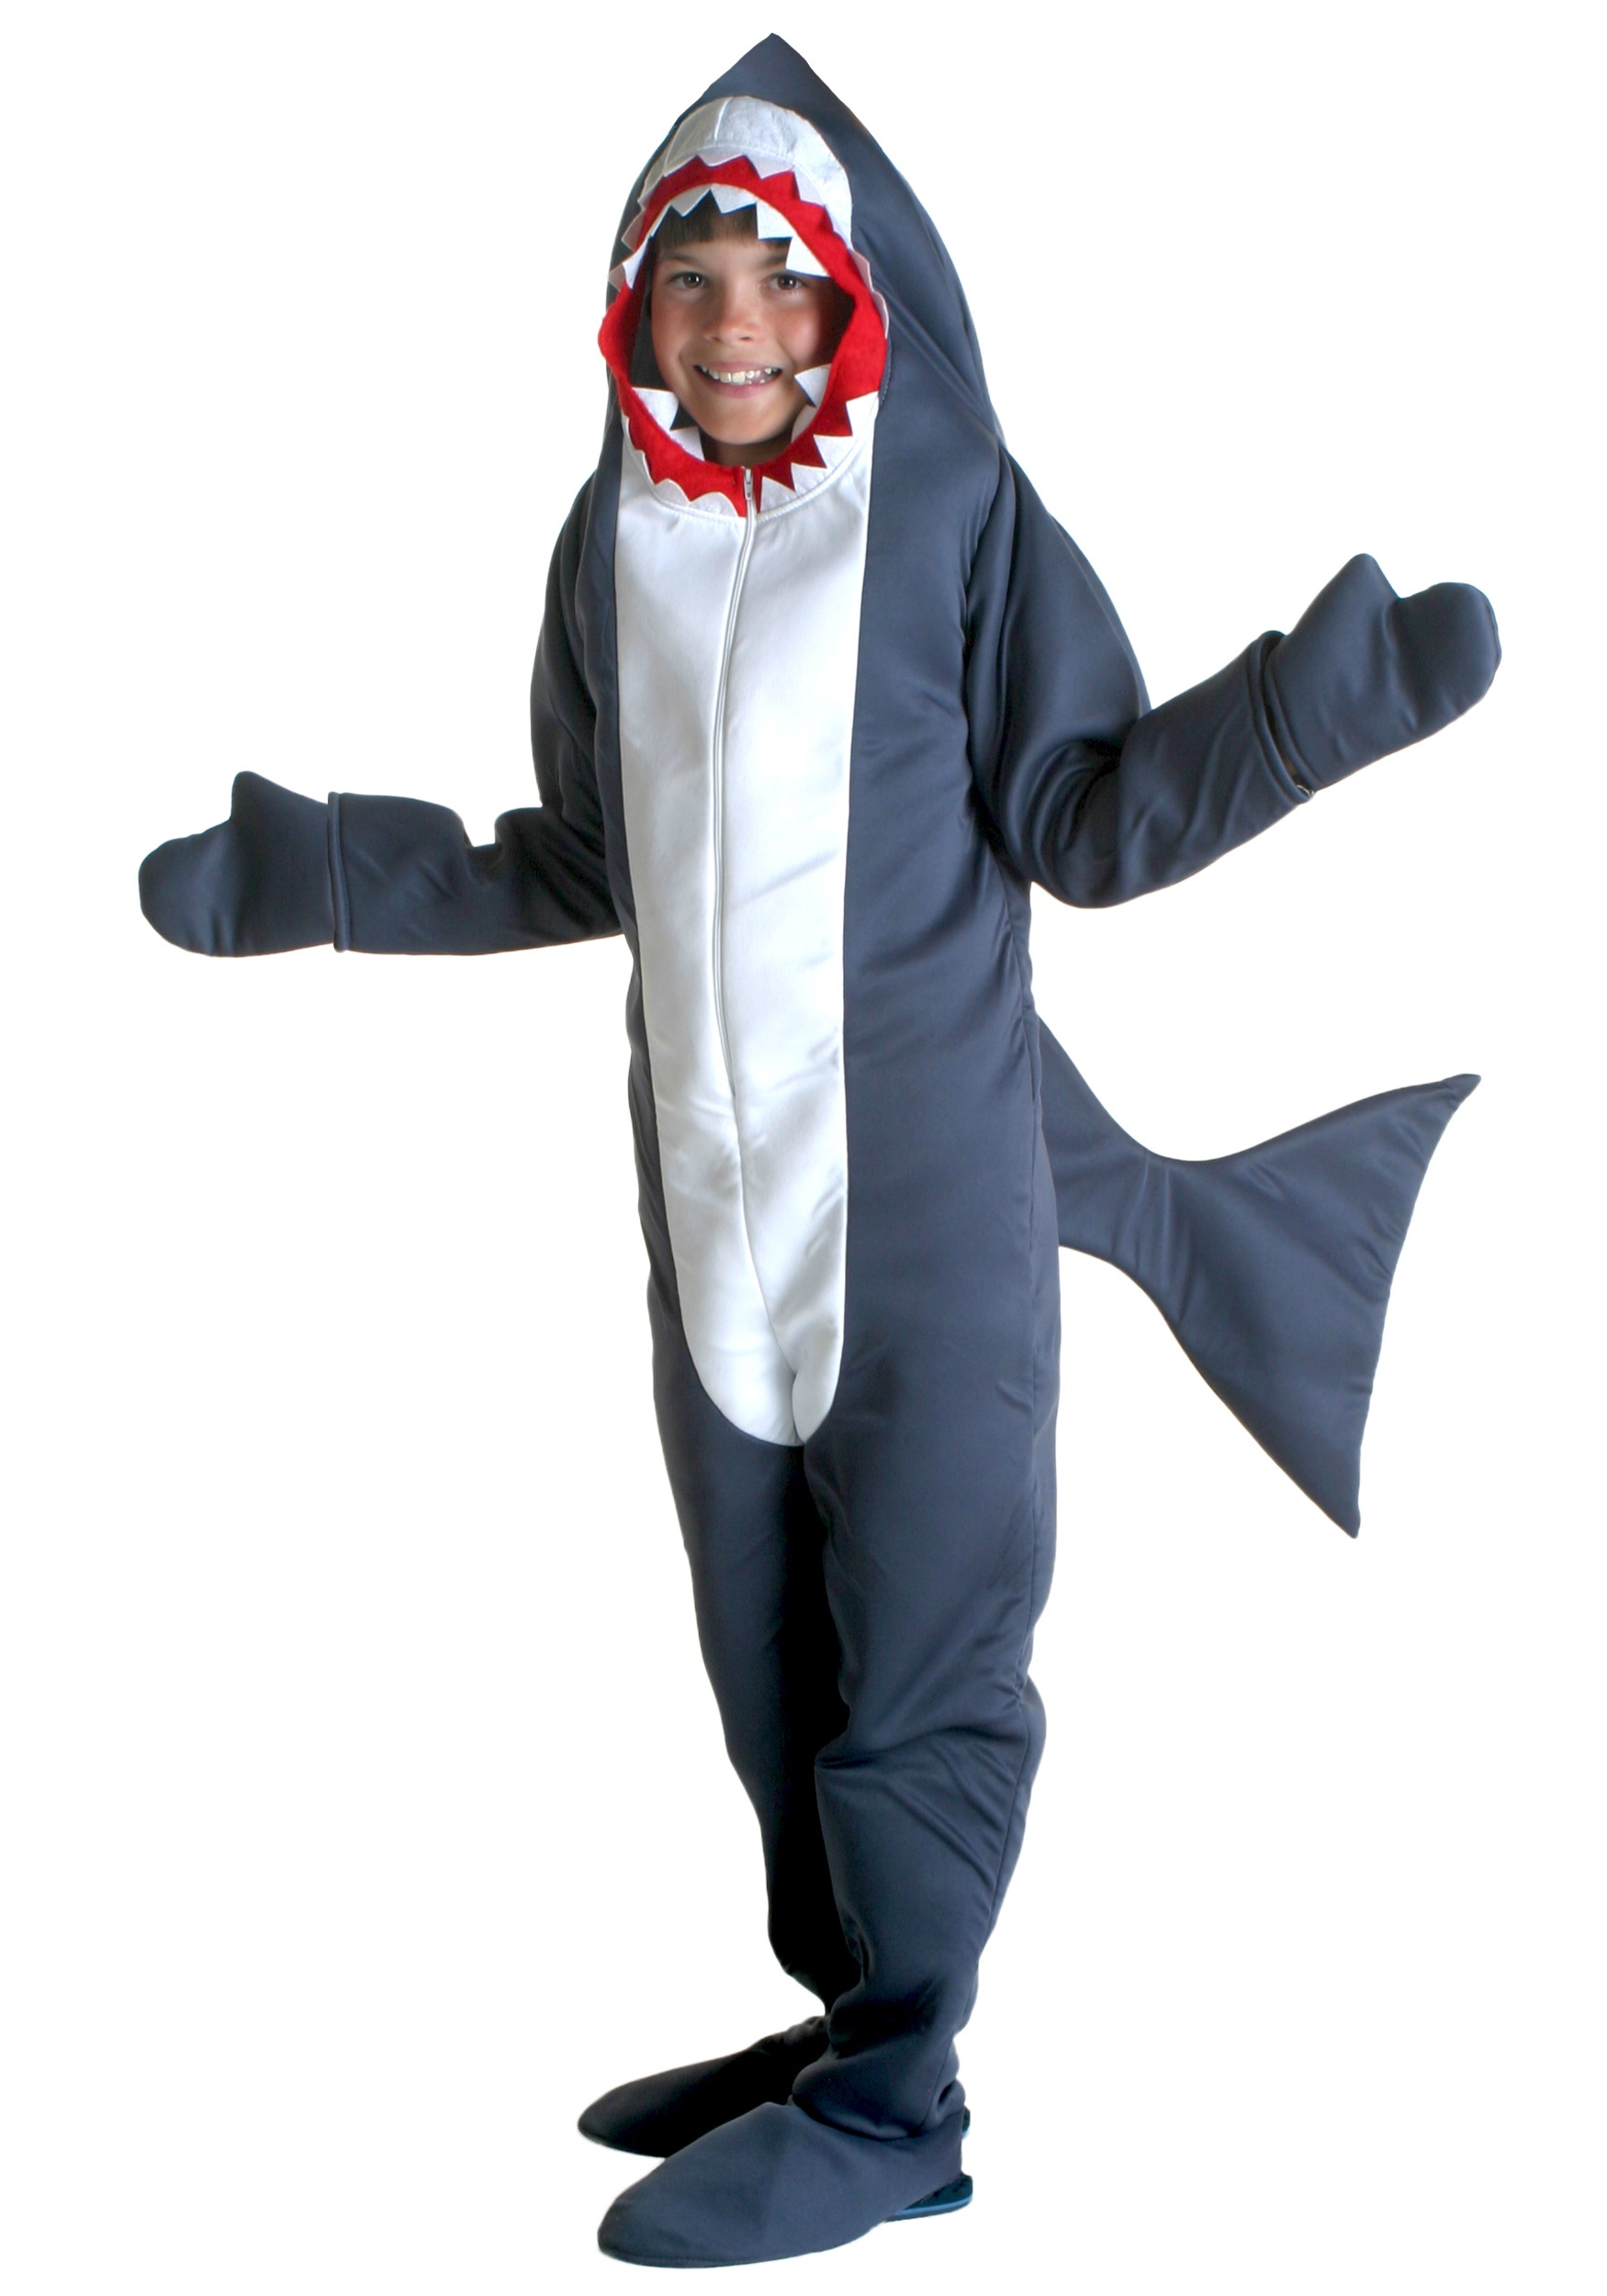 Child Shark Costume  sc 1 st  Halloween Costumes & Shark Costumes For Kids And Adults - HalloweenCostumes.com